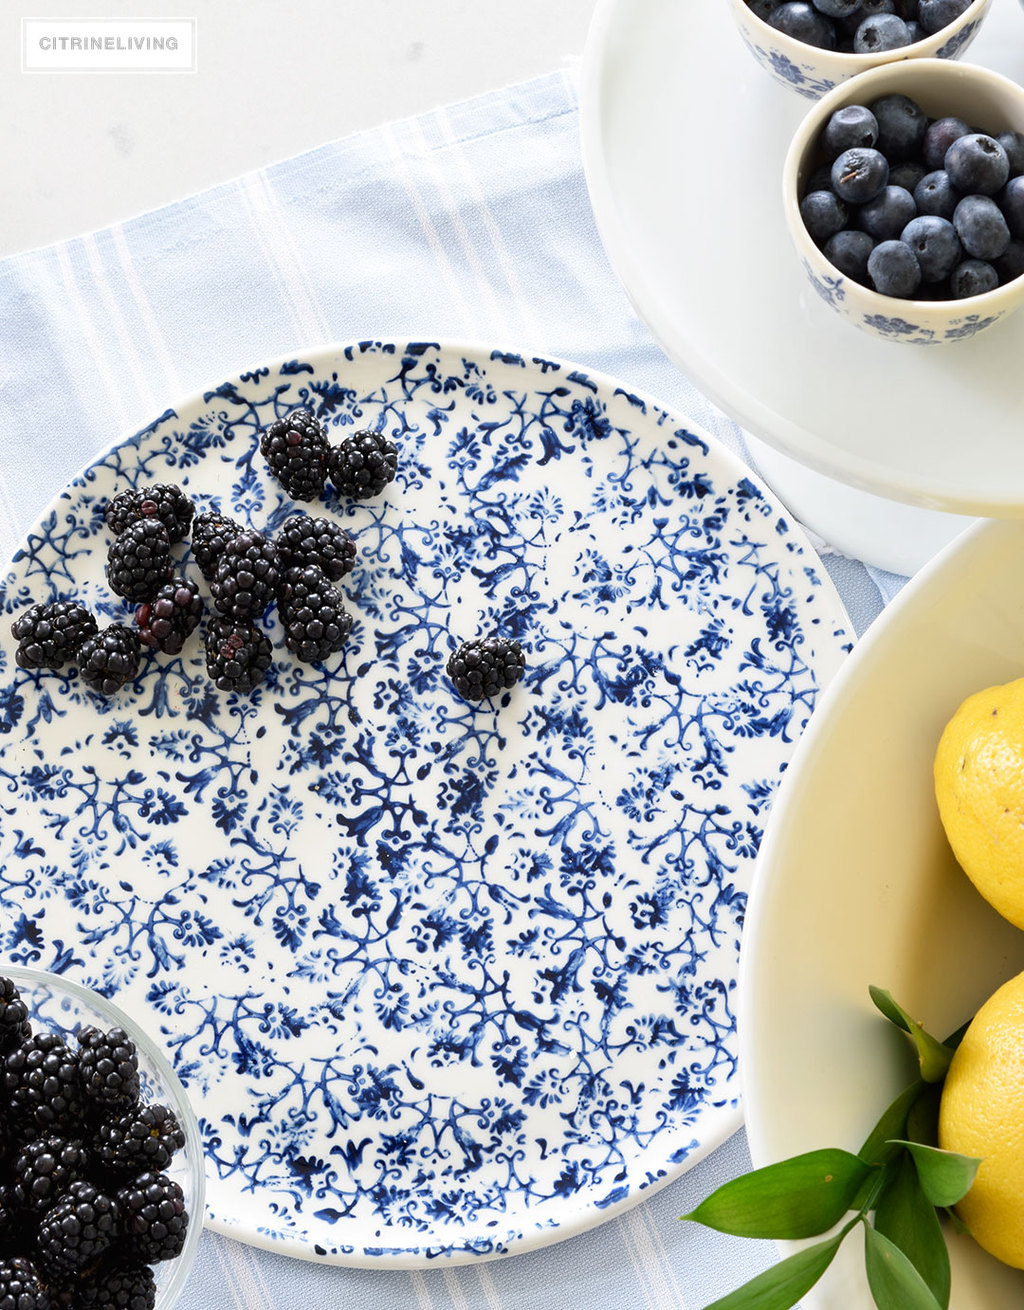 Create a welcoming tablescape of blue and white accented with fresh lemons.